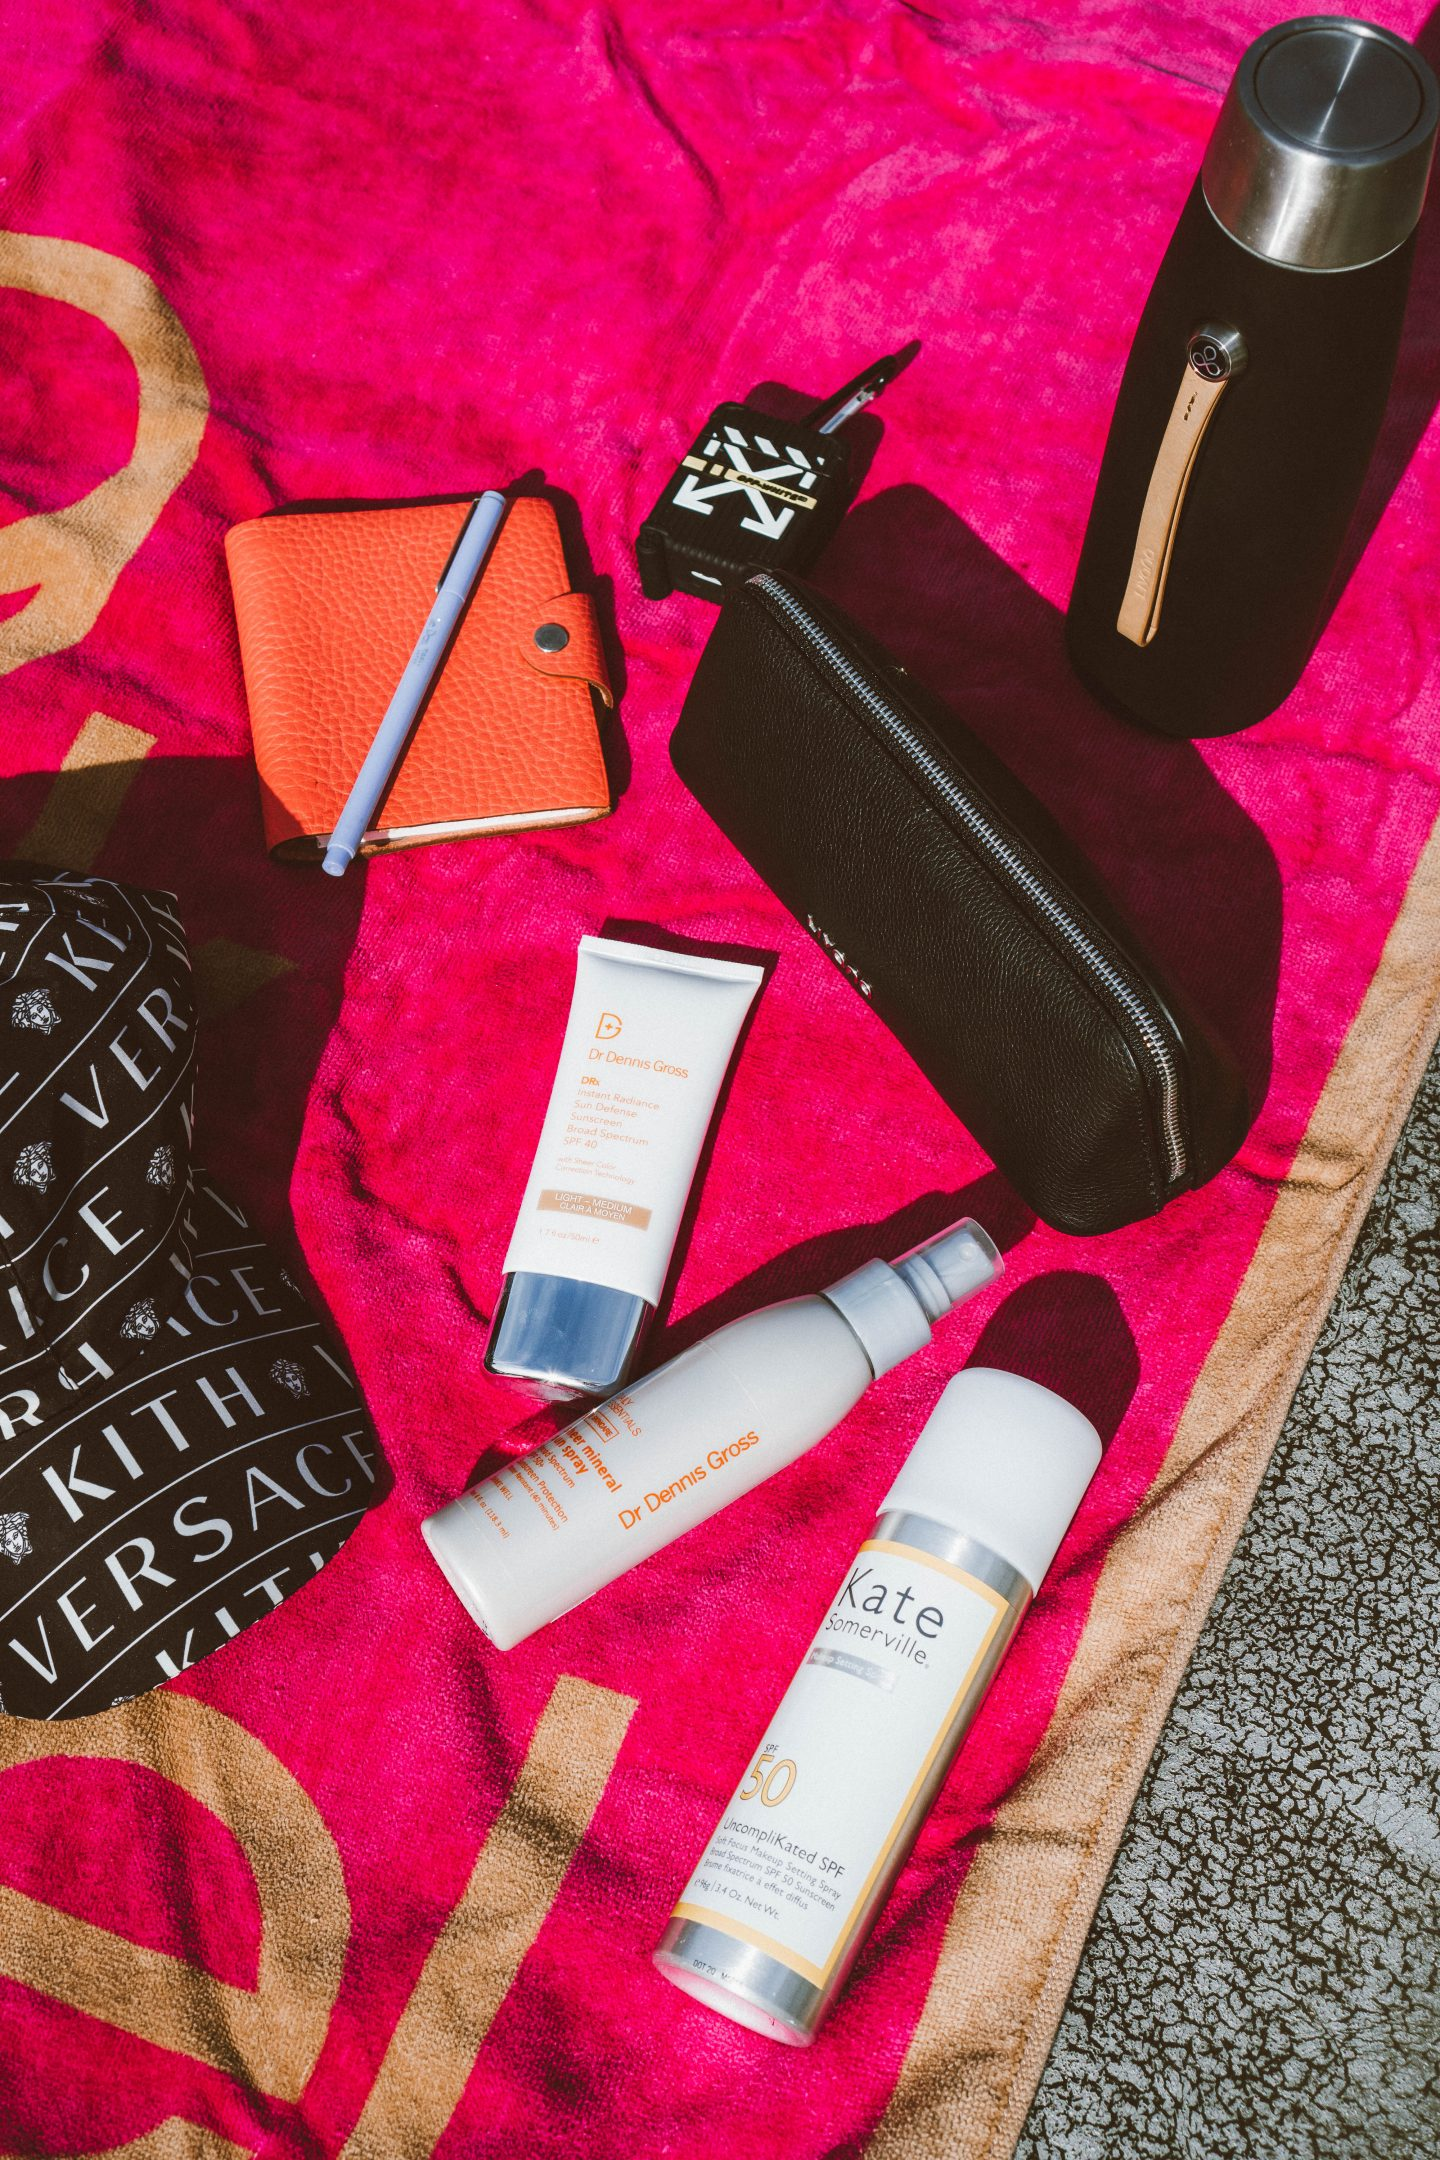 Science Forward Beauty Products x Dr. Dennis Gross Instant Radiance Sunscreen, mineral sun spray, livana silk slip bottle, hermes notebook, kith versace hat